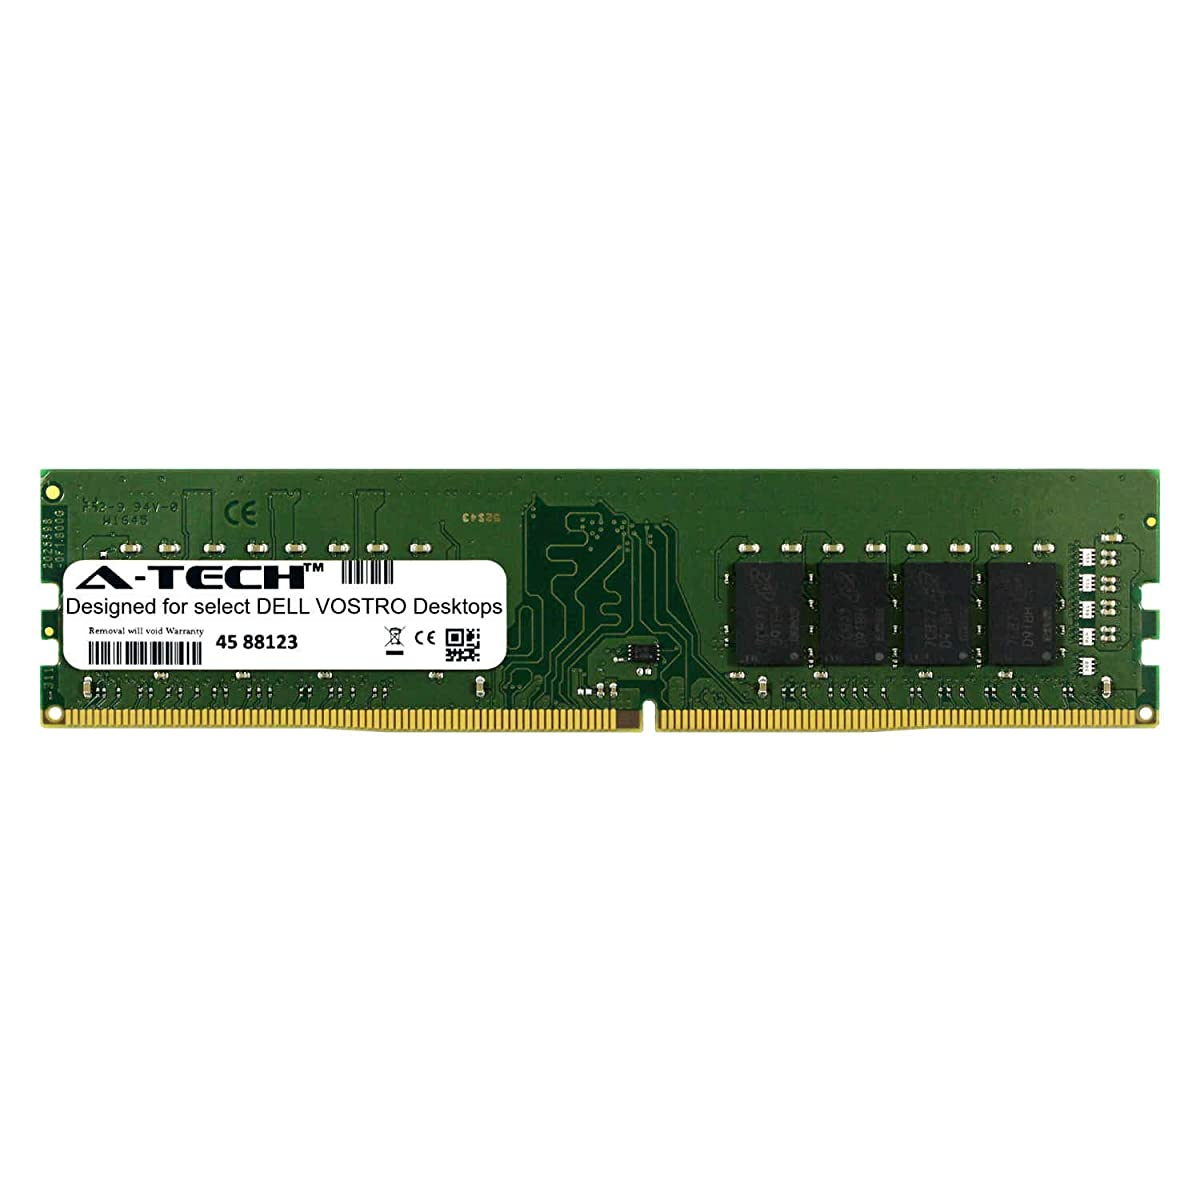 A-Tech 8GB Module for Dell Vostro 3470 T3470 3660 T3660 3667 T3667 3668 T3668 3669 T3669 3670 T3670 Desktop Computer Memory Ram Stick